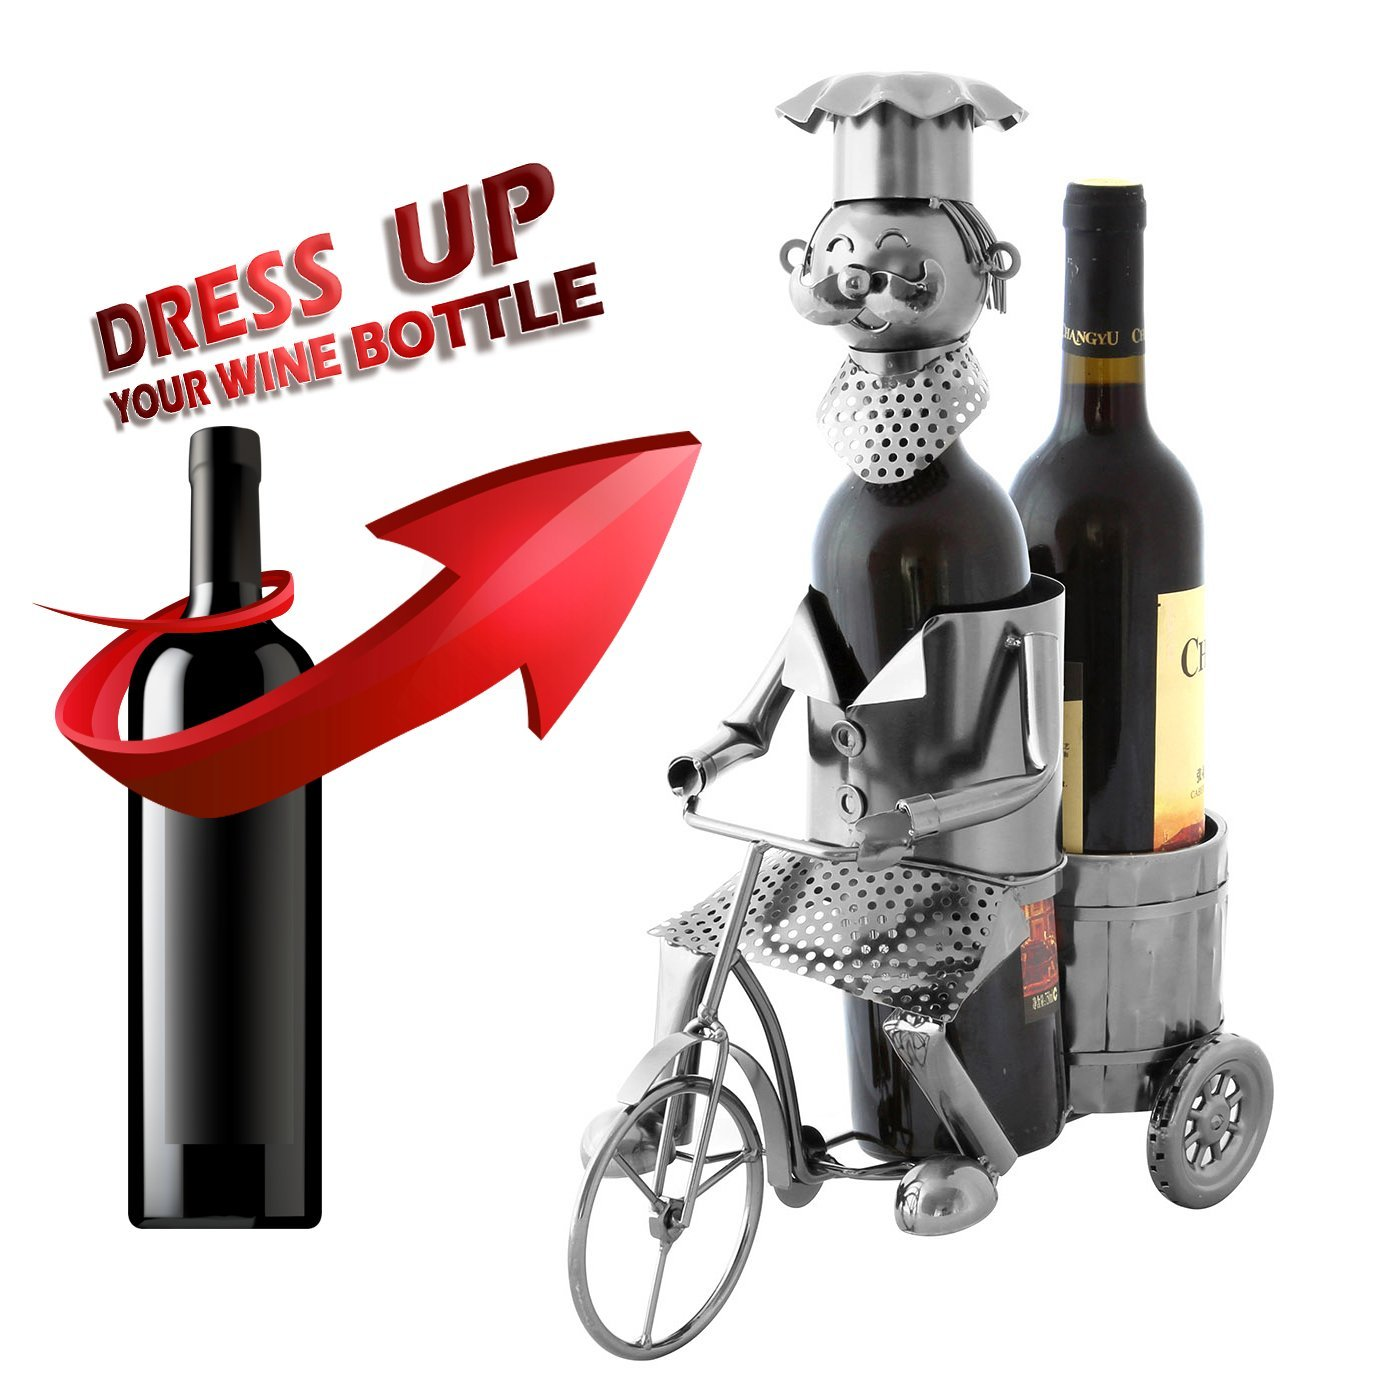 chef-on-the-go-wine-bottle-holder